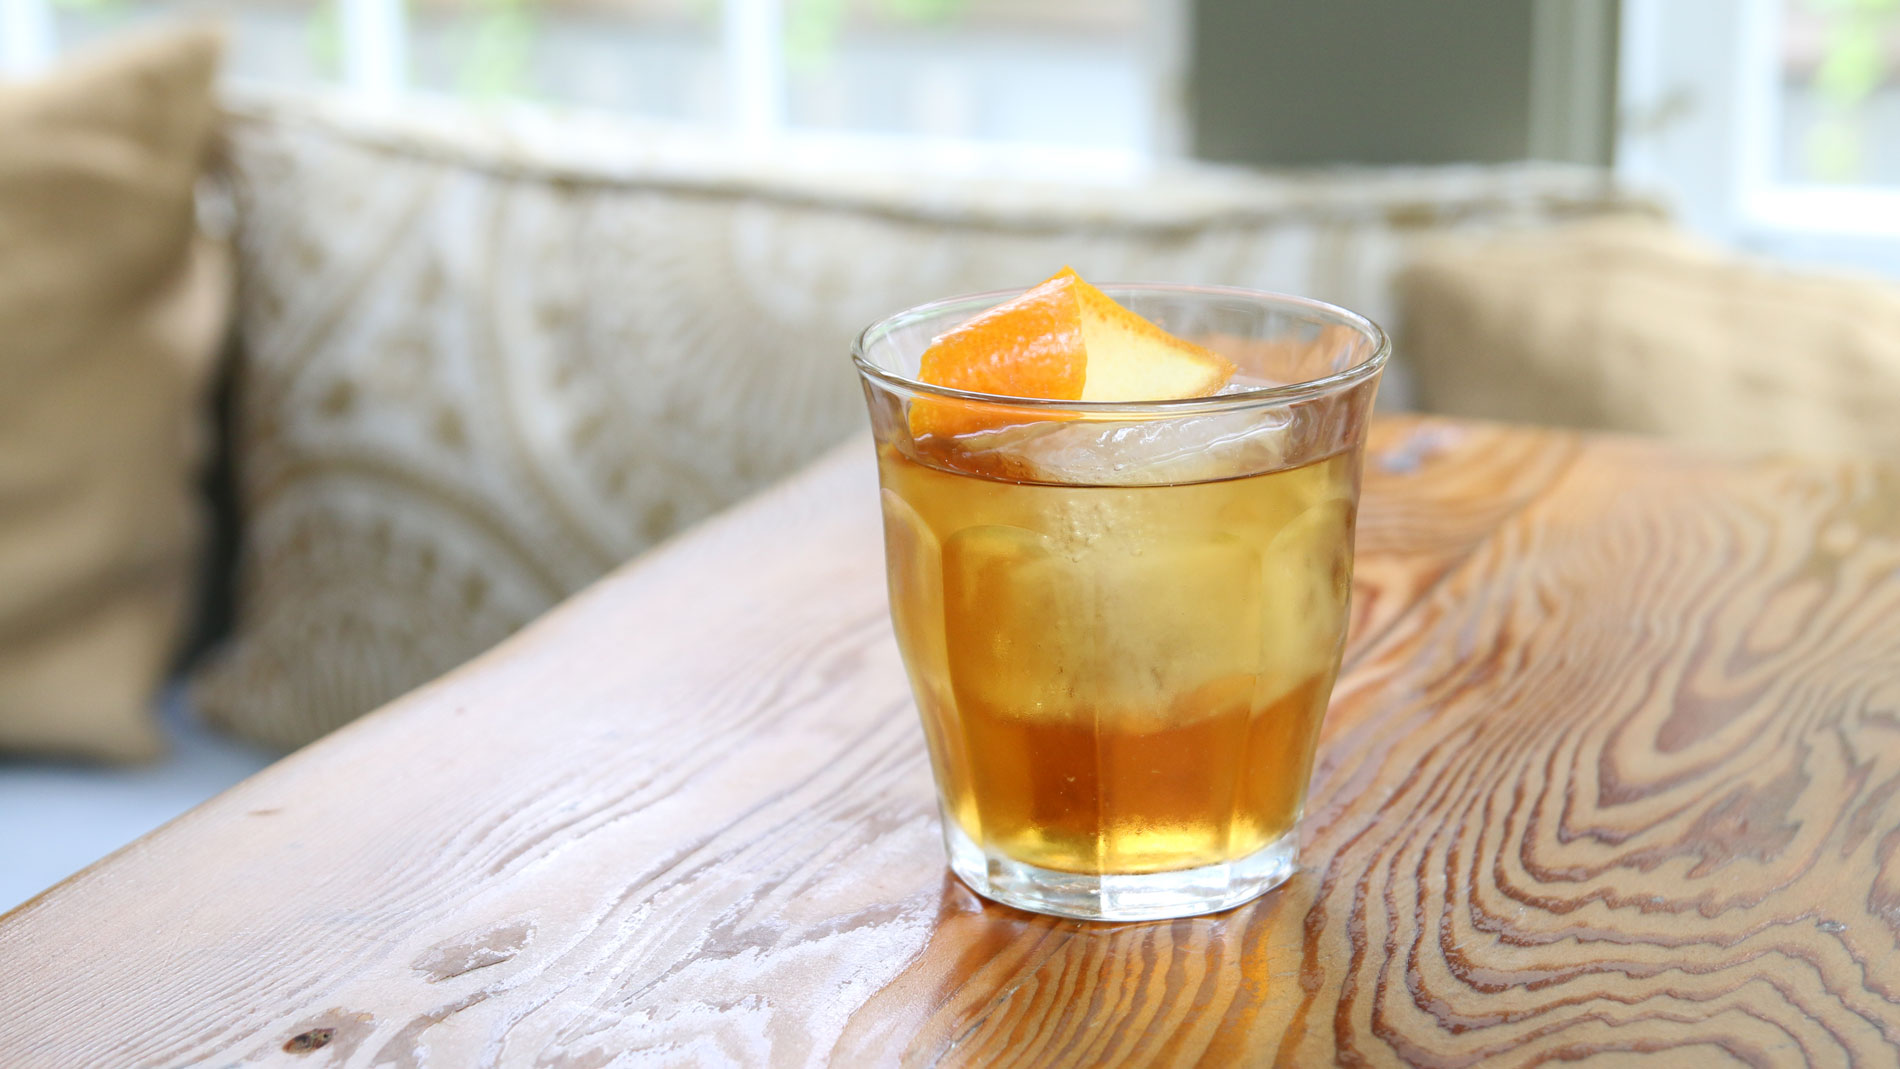 The No. 8 Cocktail